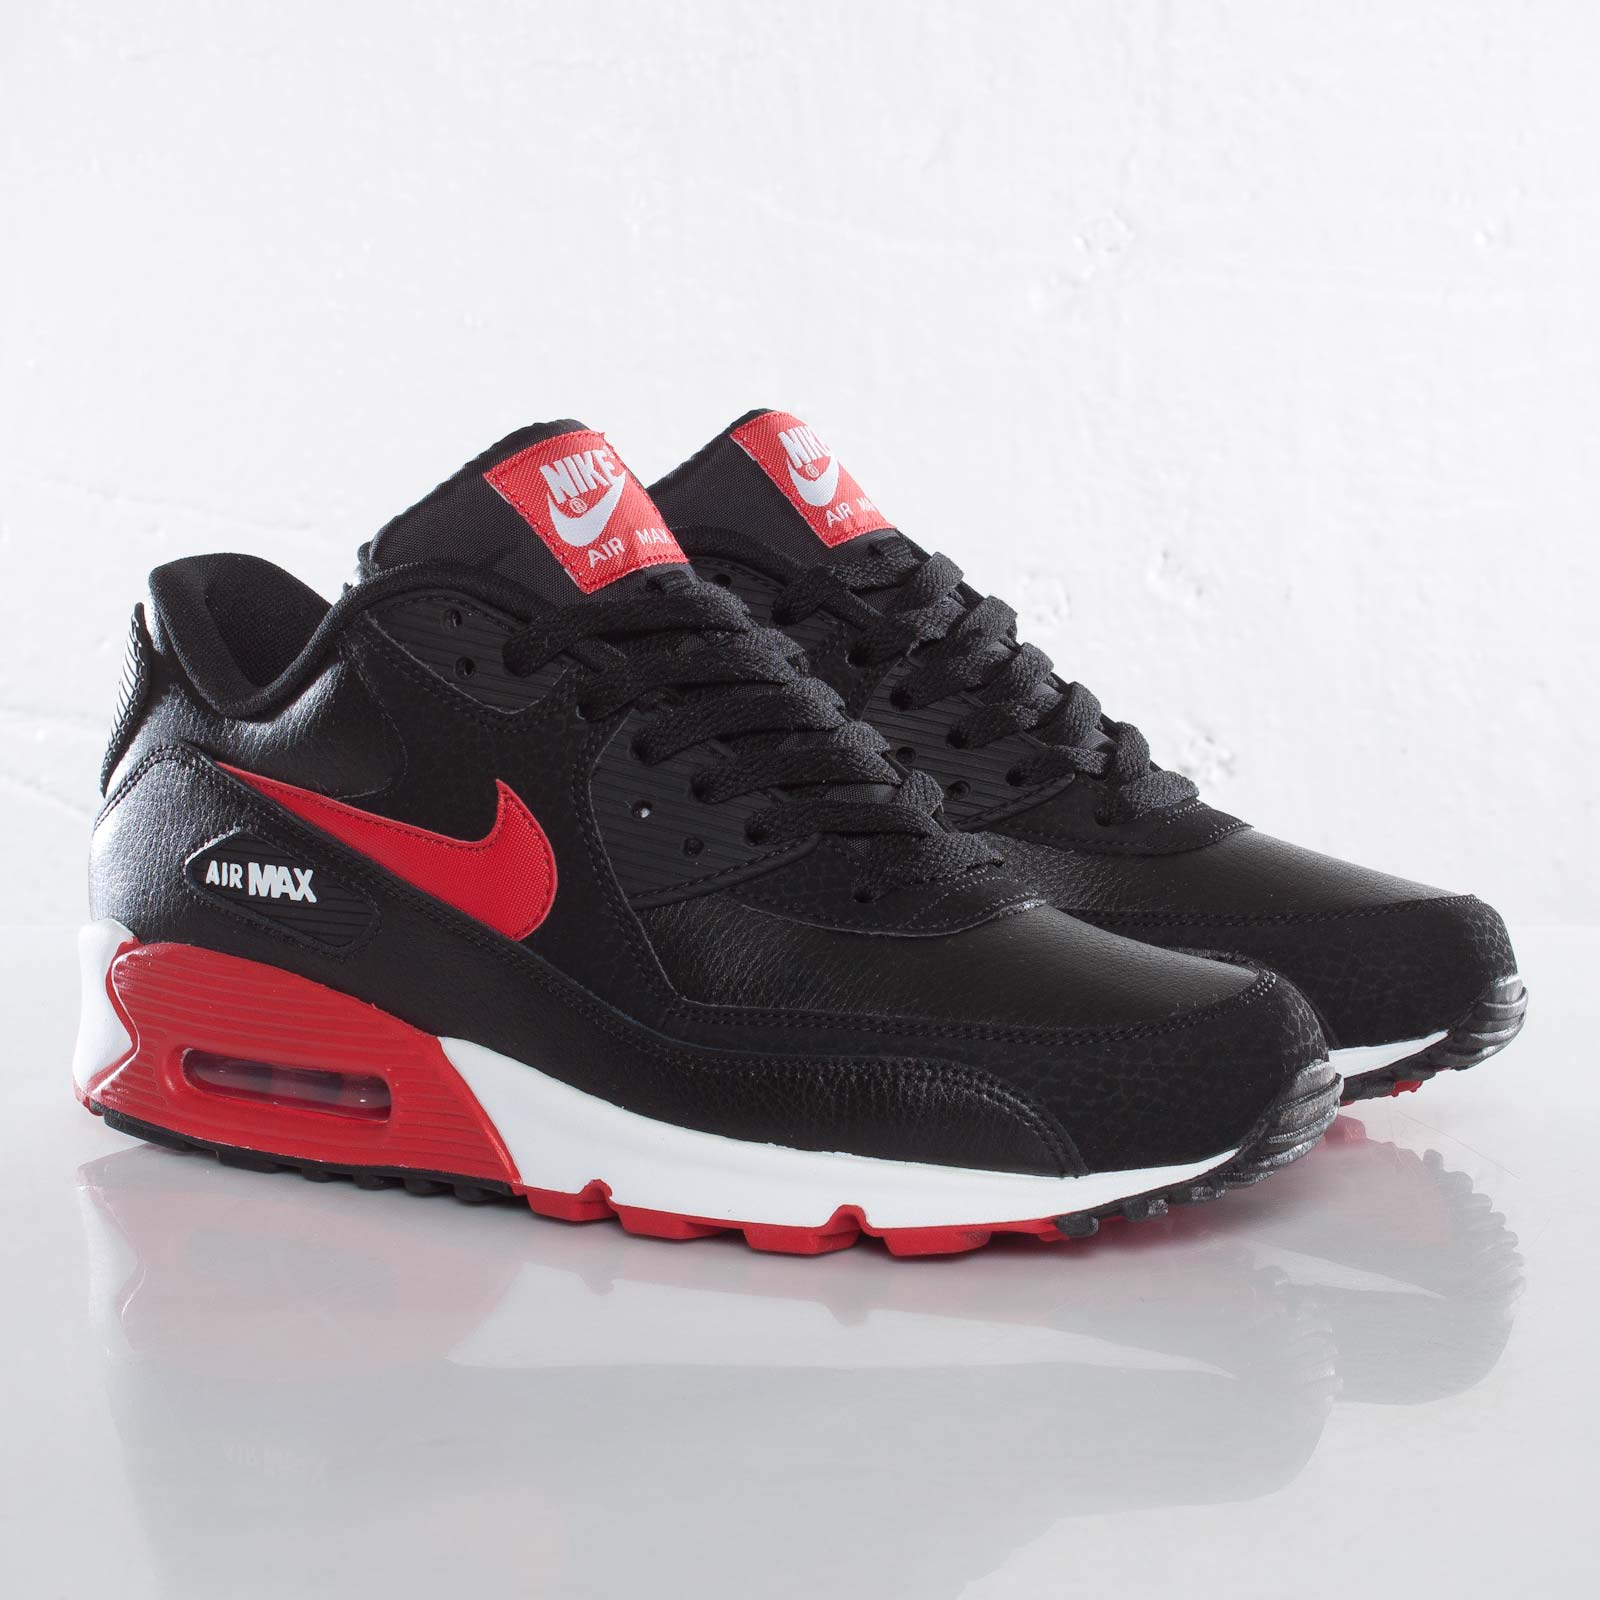 reputable site 6418e 33054 Nike Air Max 90 Essential